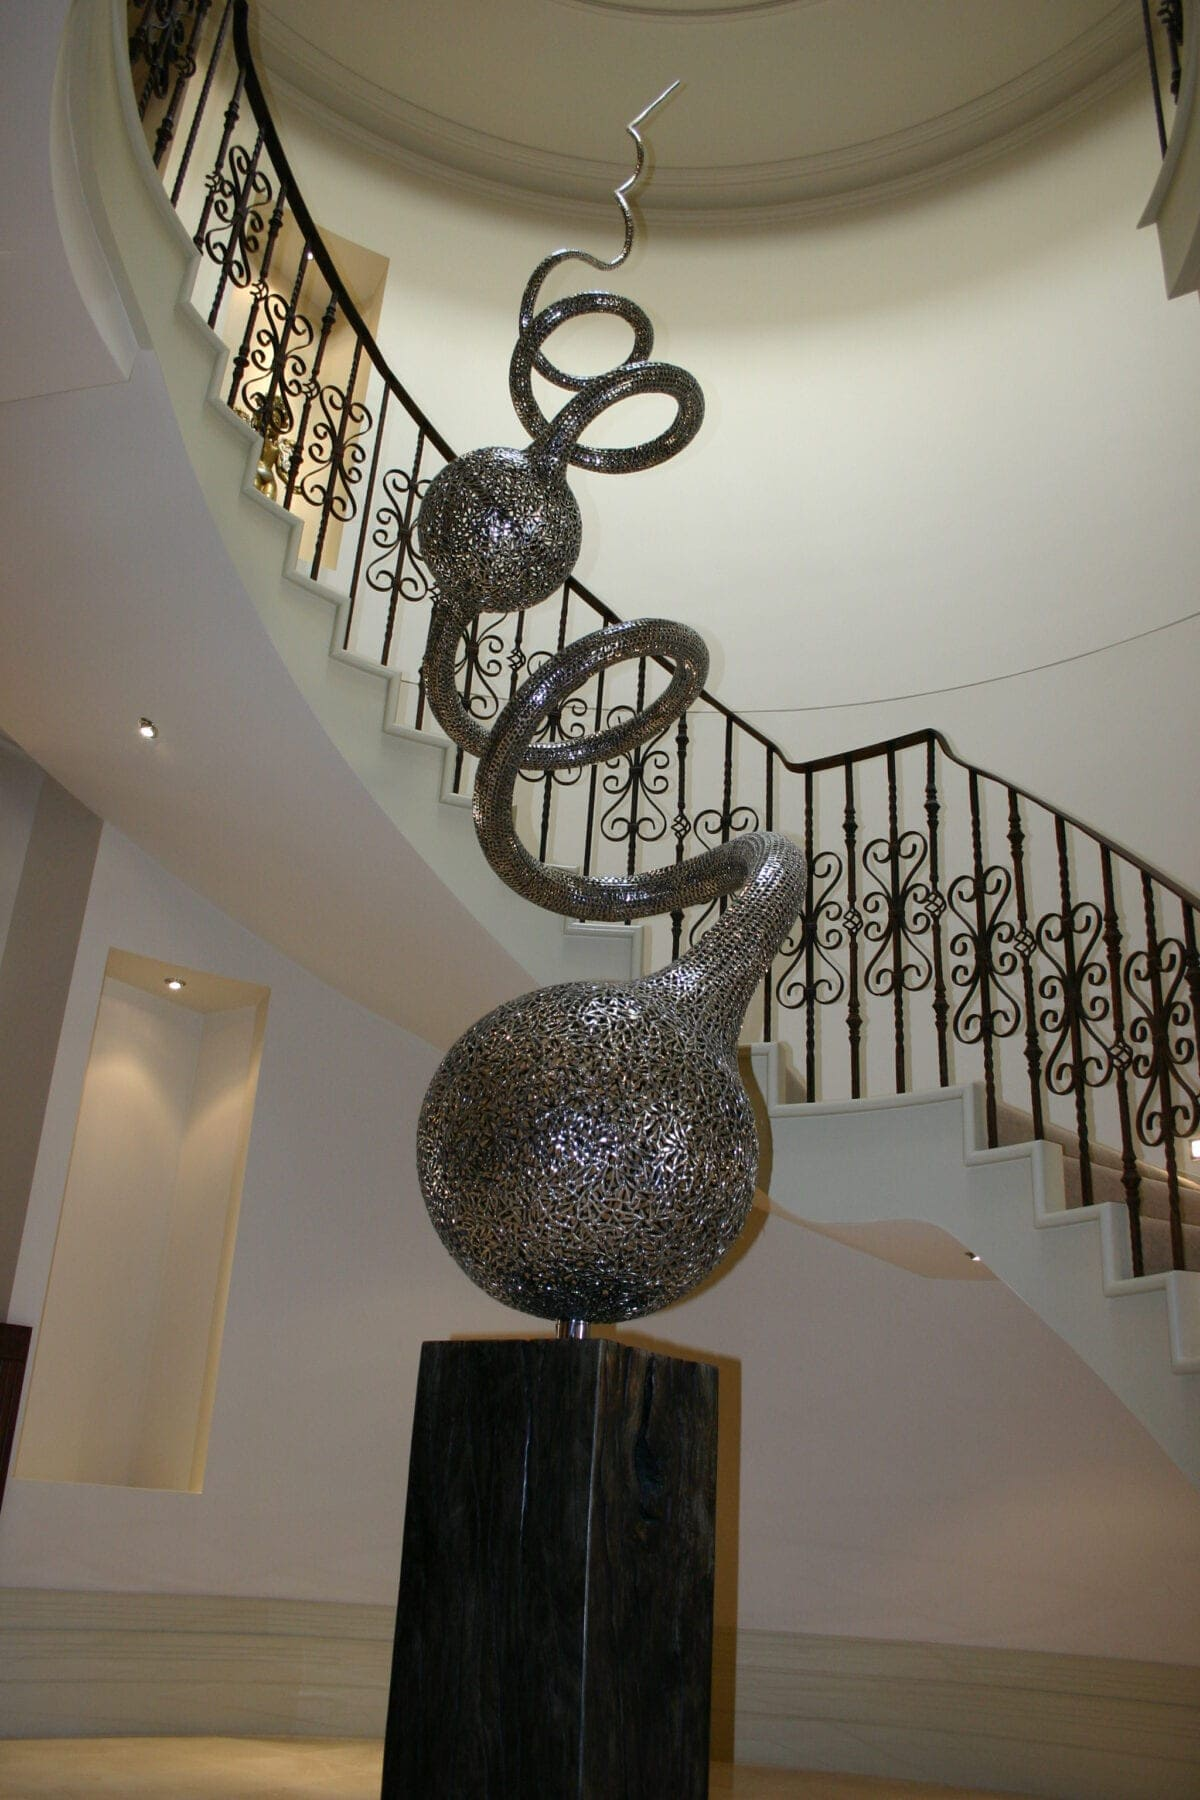 Stainless Steel Sculpture Rental Corporate